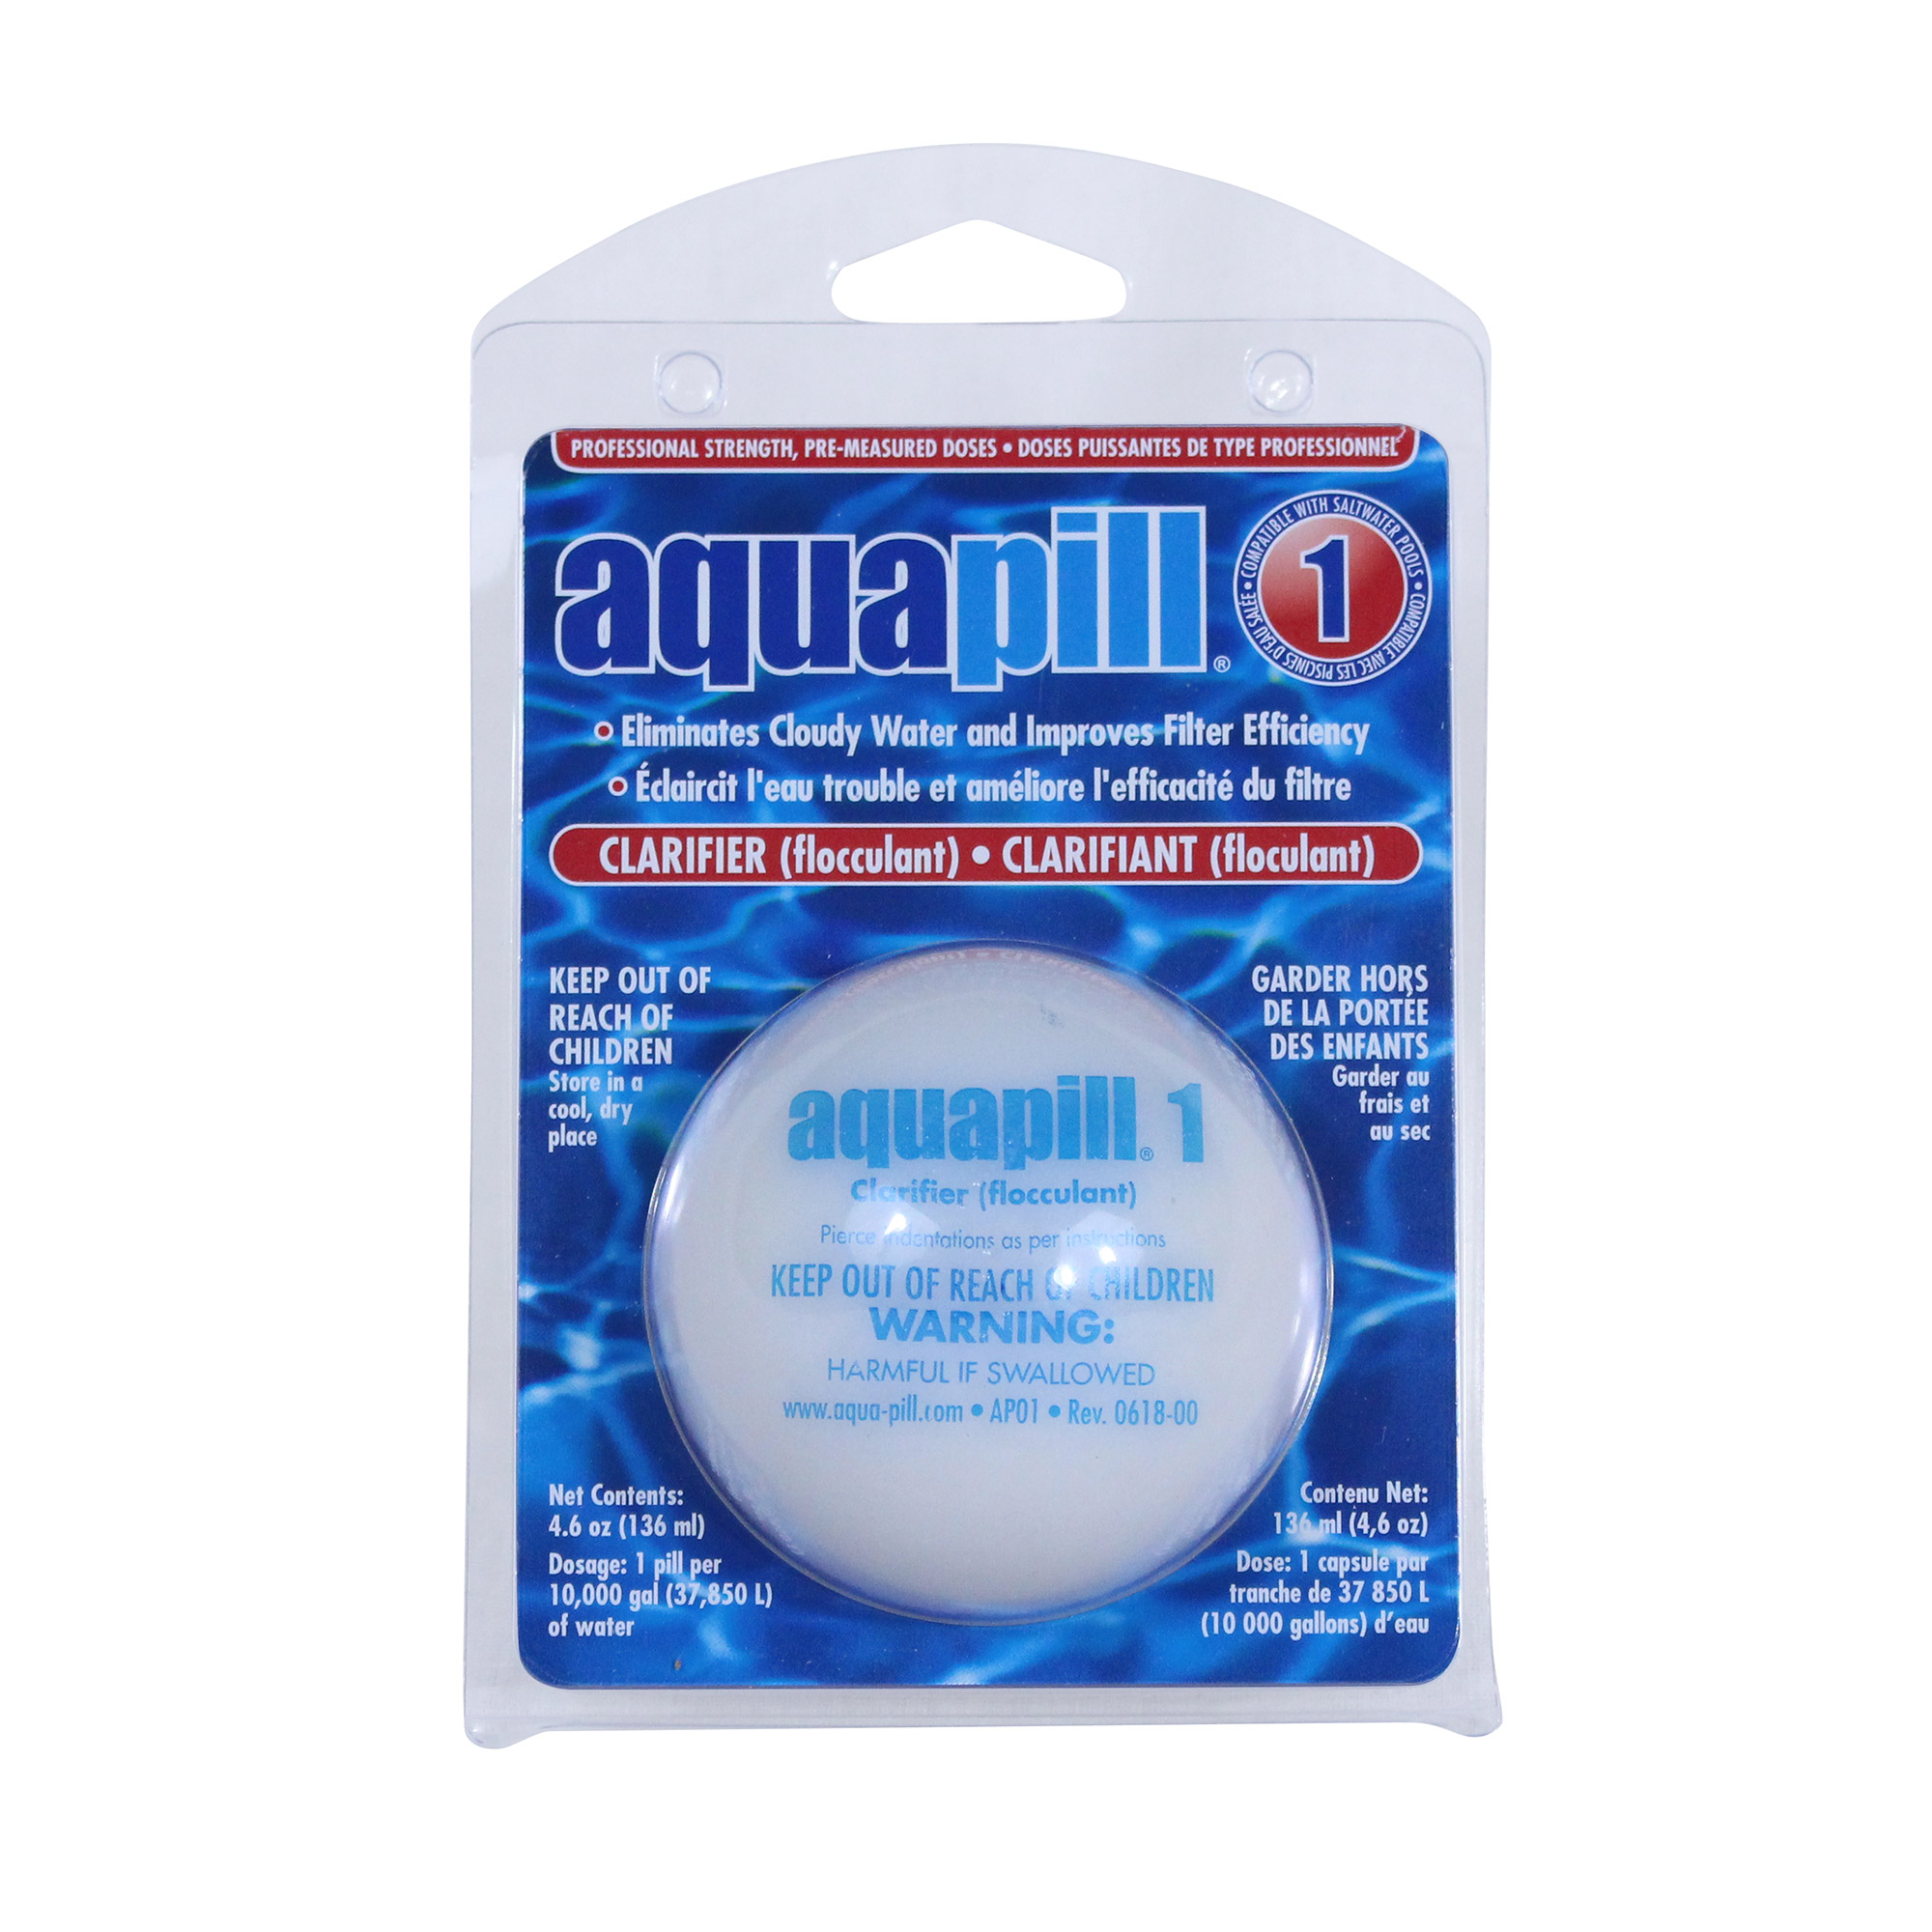 Details about Aqua Pill 1 Swimming Pool Water Clarifier & Flocculant  Chemical